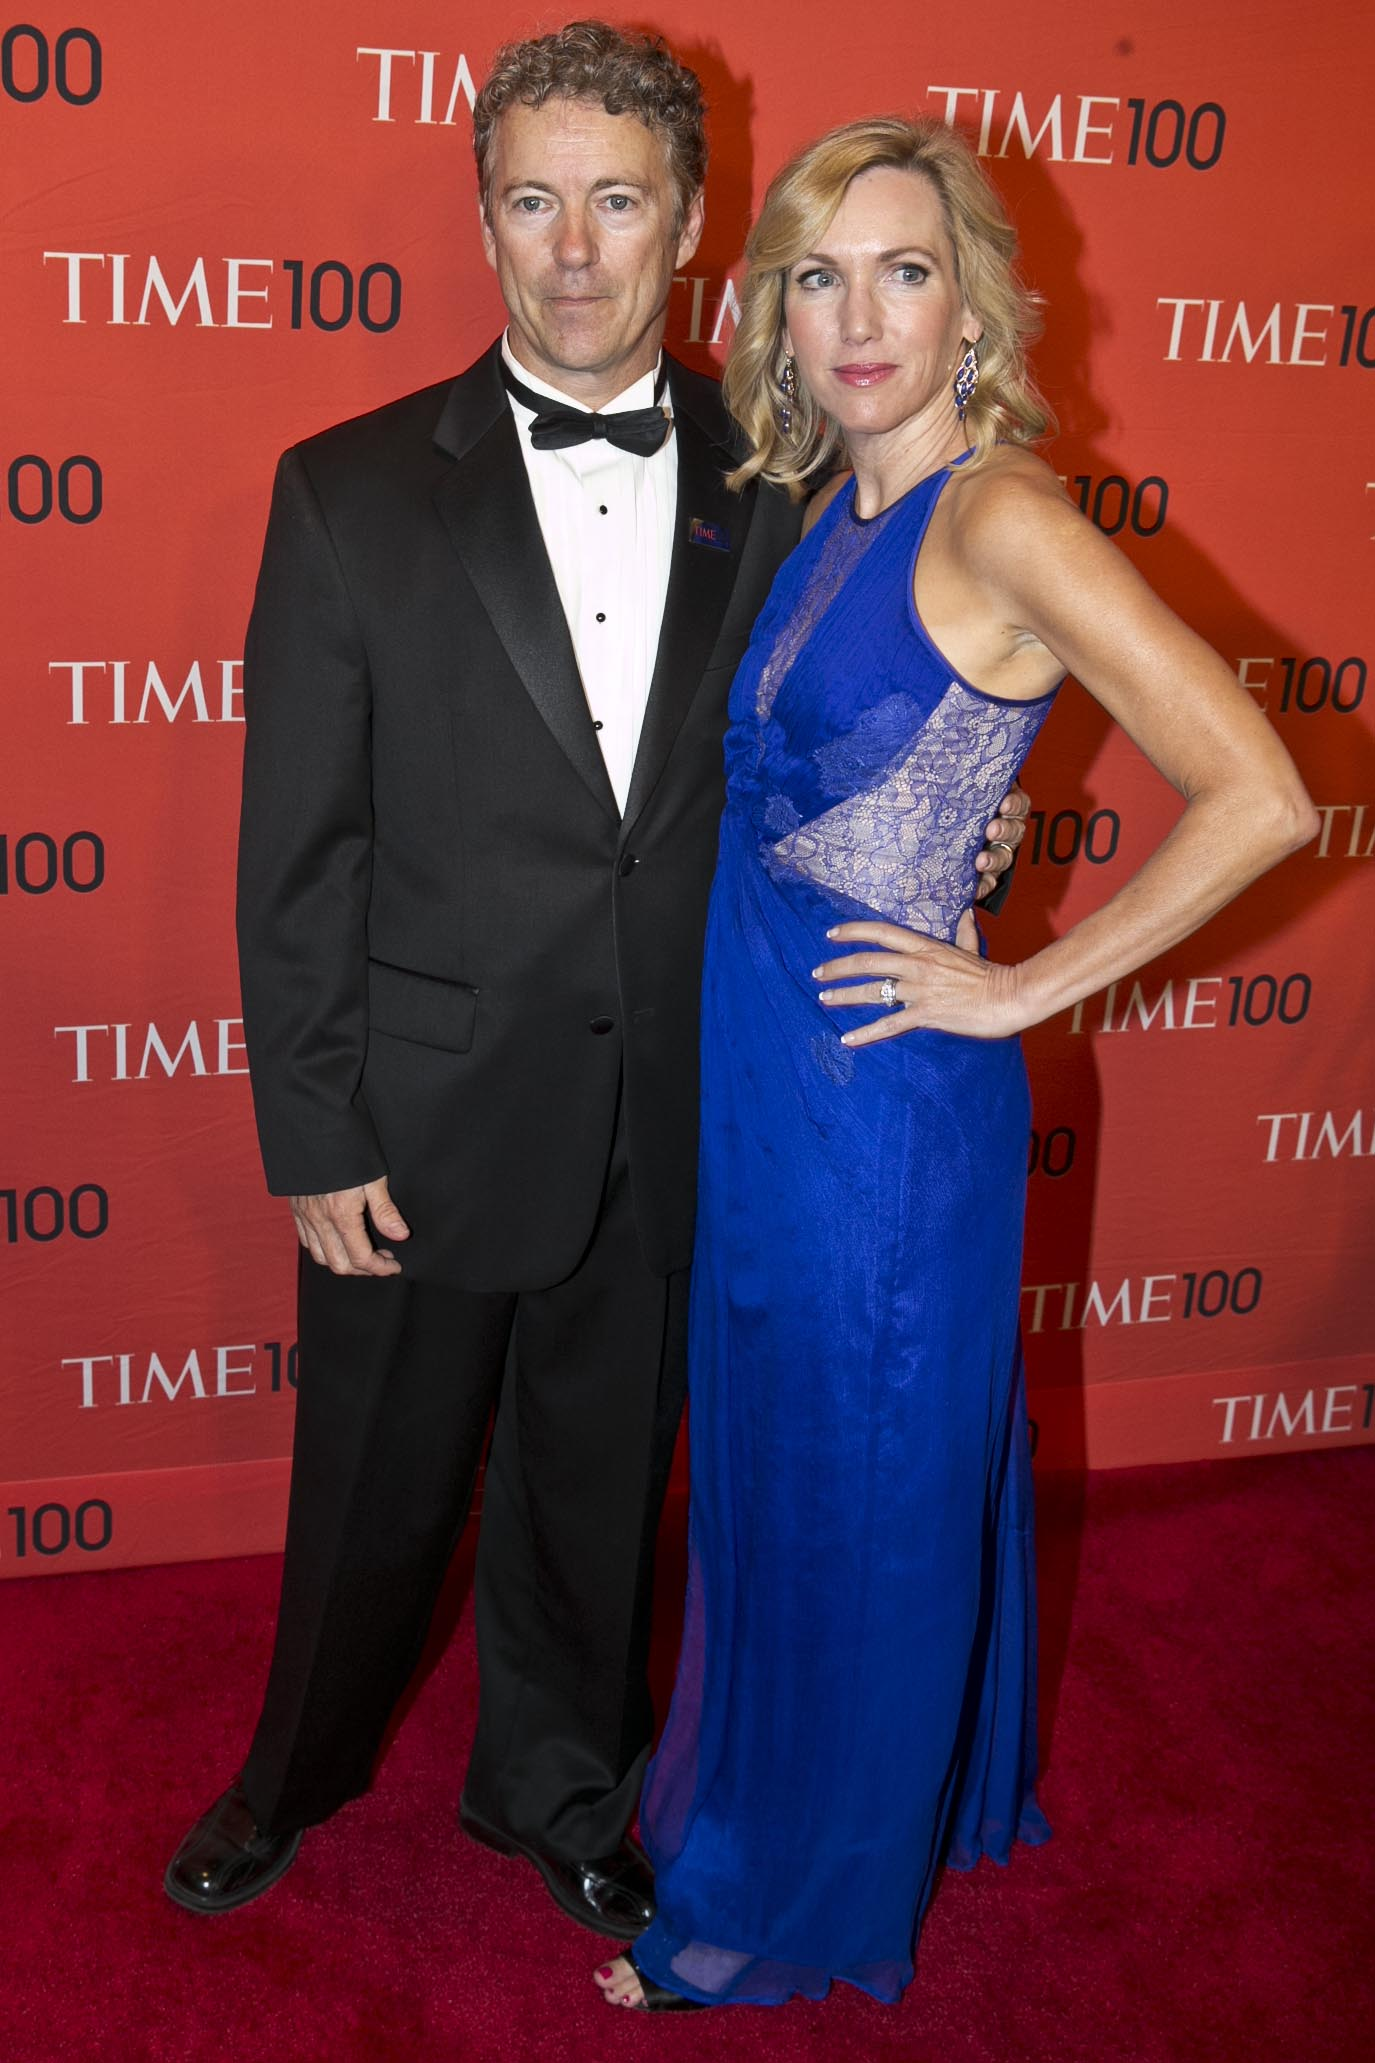 Rand Paul and Kelley Ashby at the Time 100 Gala at Jazz at Lincoln Center in New York City on April, 29, 2014